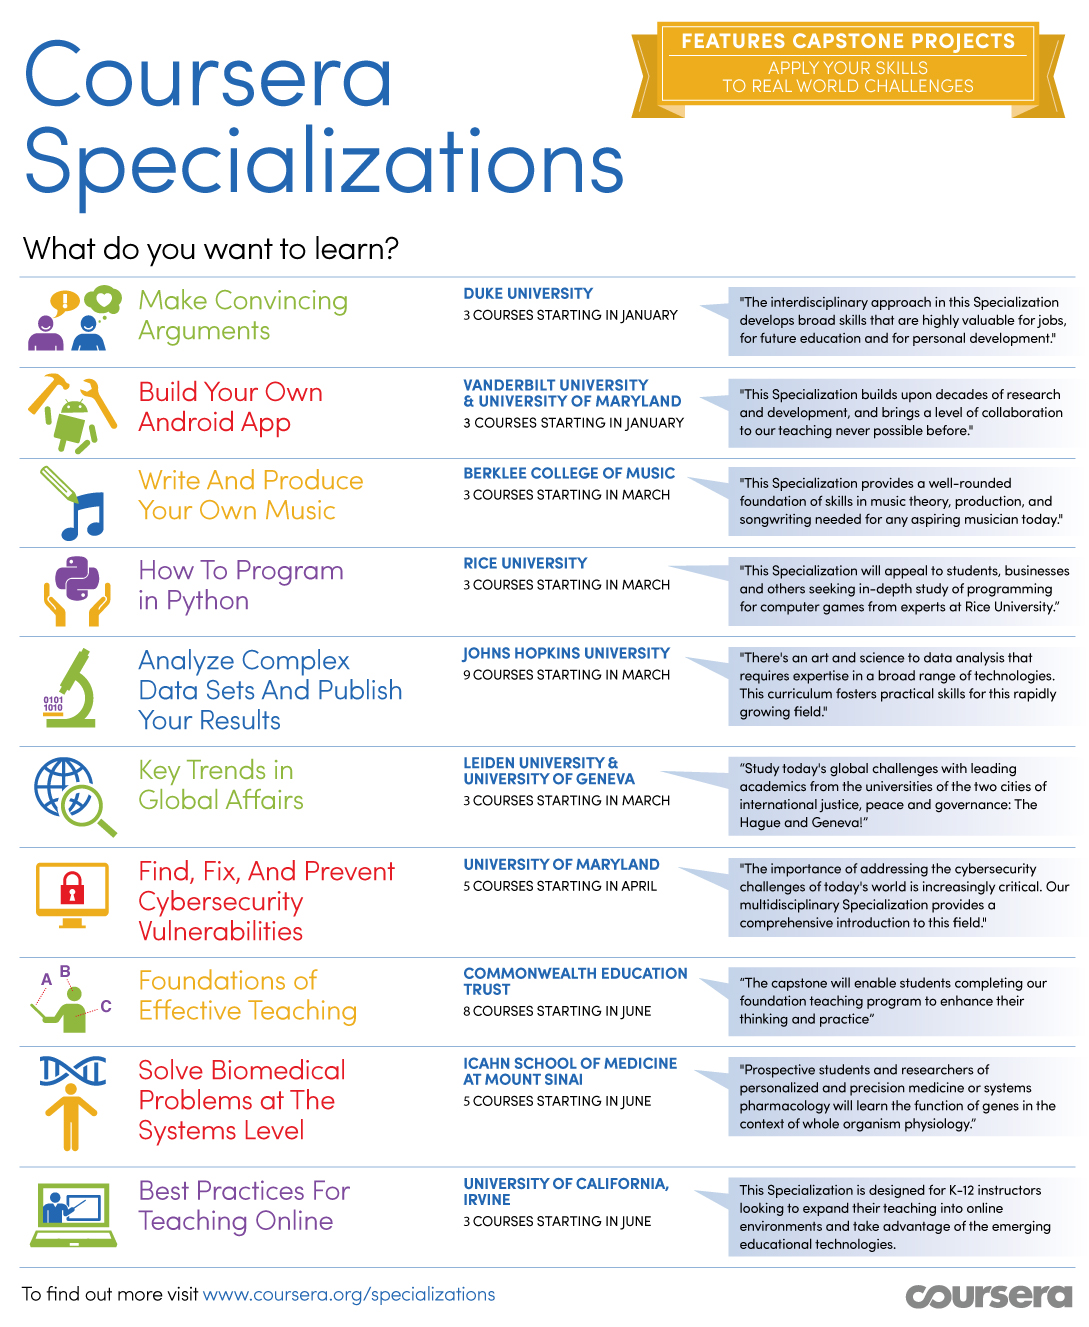 Coursera Specializations Infographic